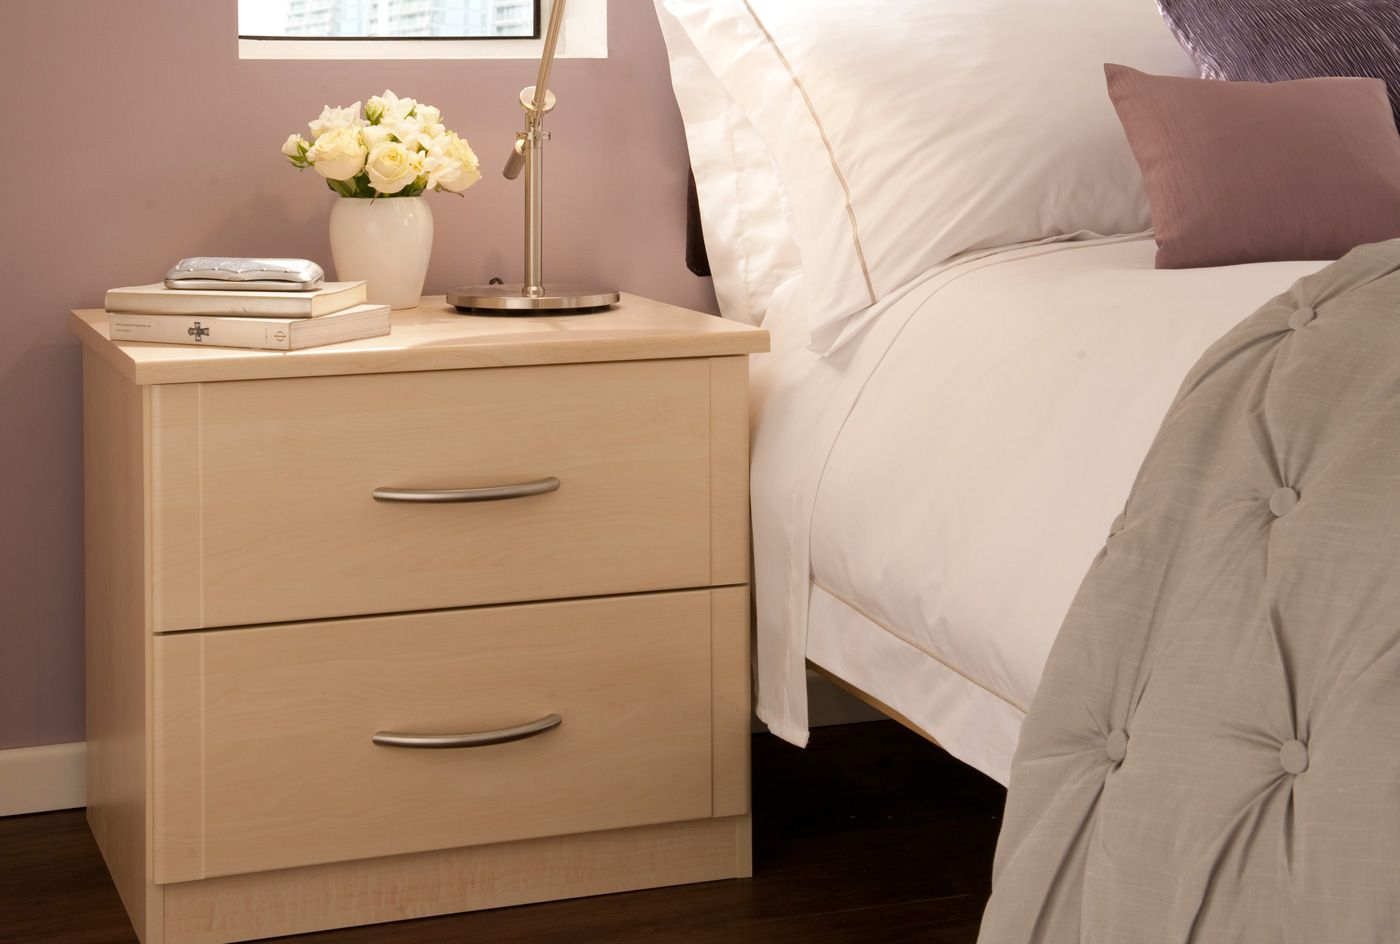 Sharps Fitted Bedroom Furniture Bedside Table With A Maple Finish From The Milan Bedroom Furniture